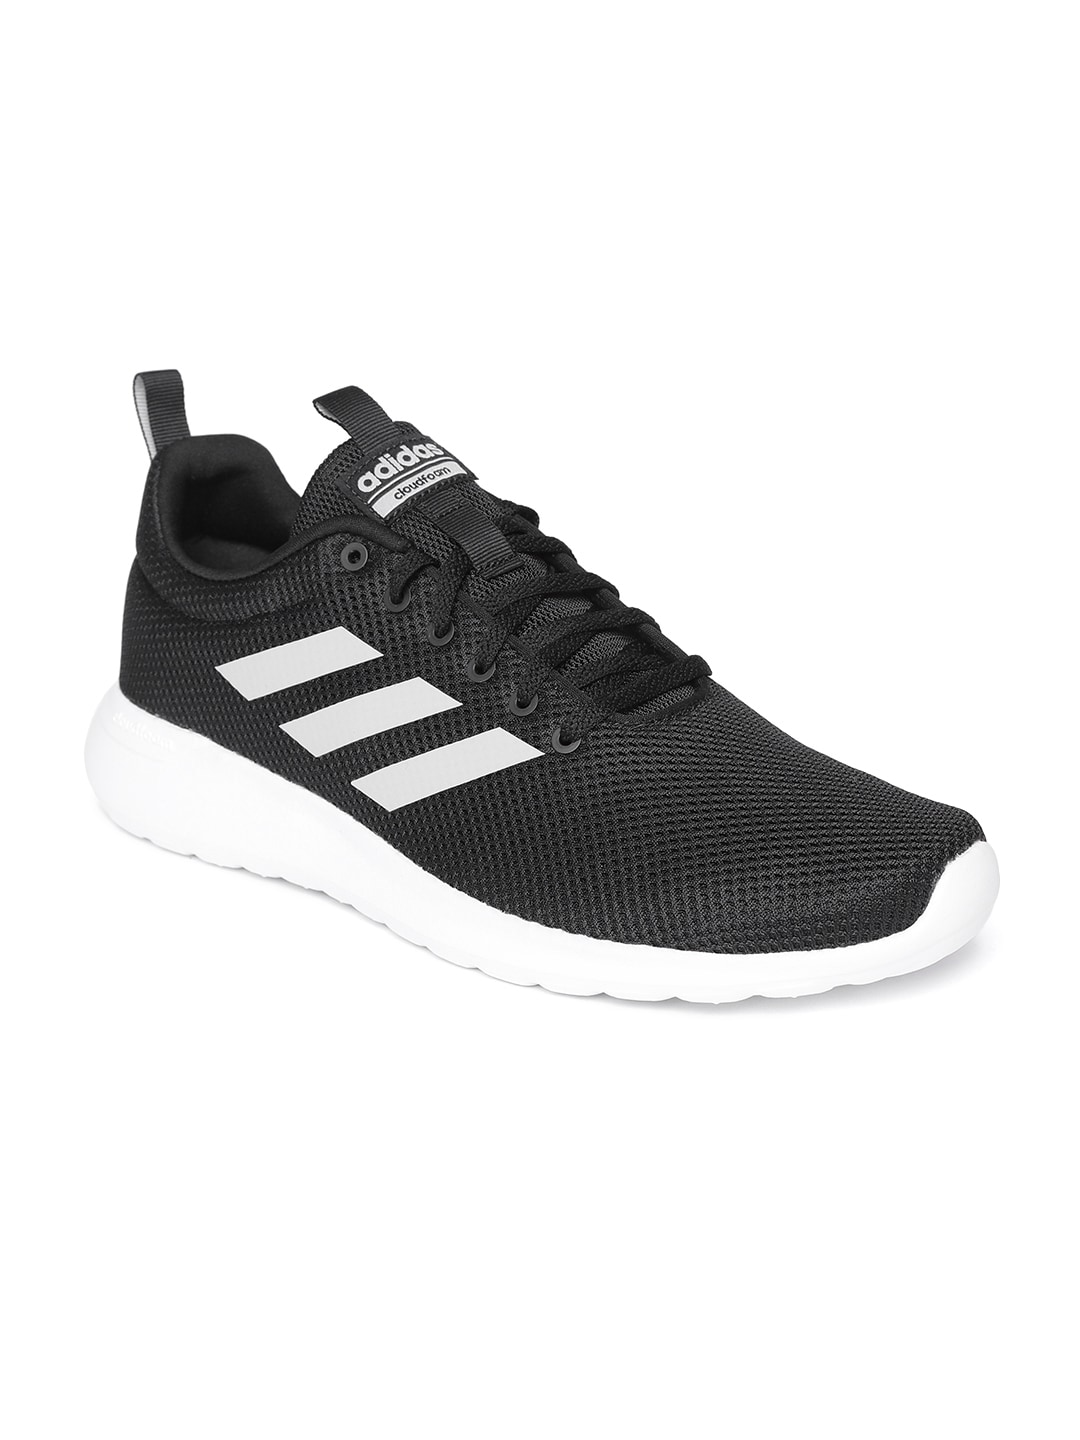 b858ced4c Buy Adidas Men Black Cloudfoam Swift Racer Running Shoes - Sports ...